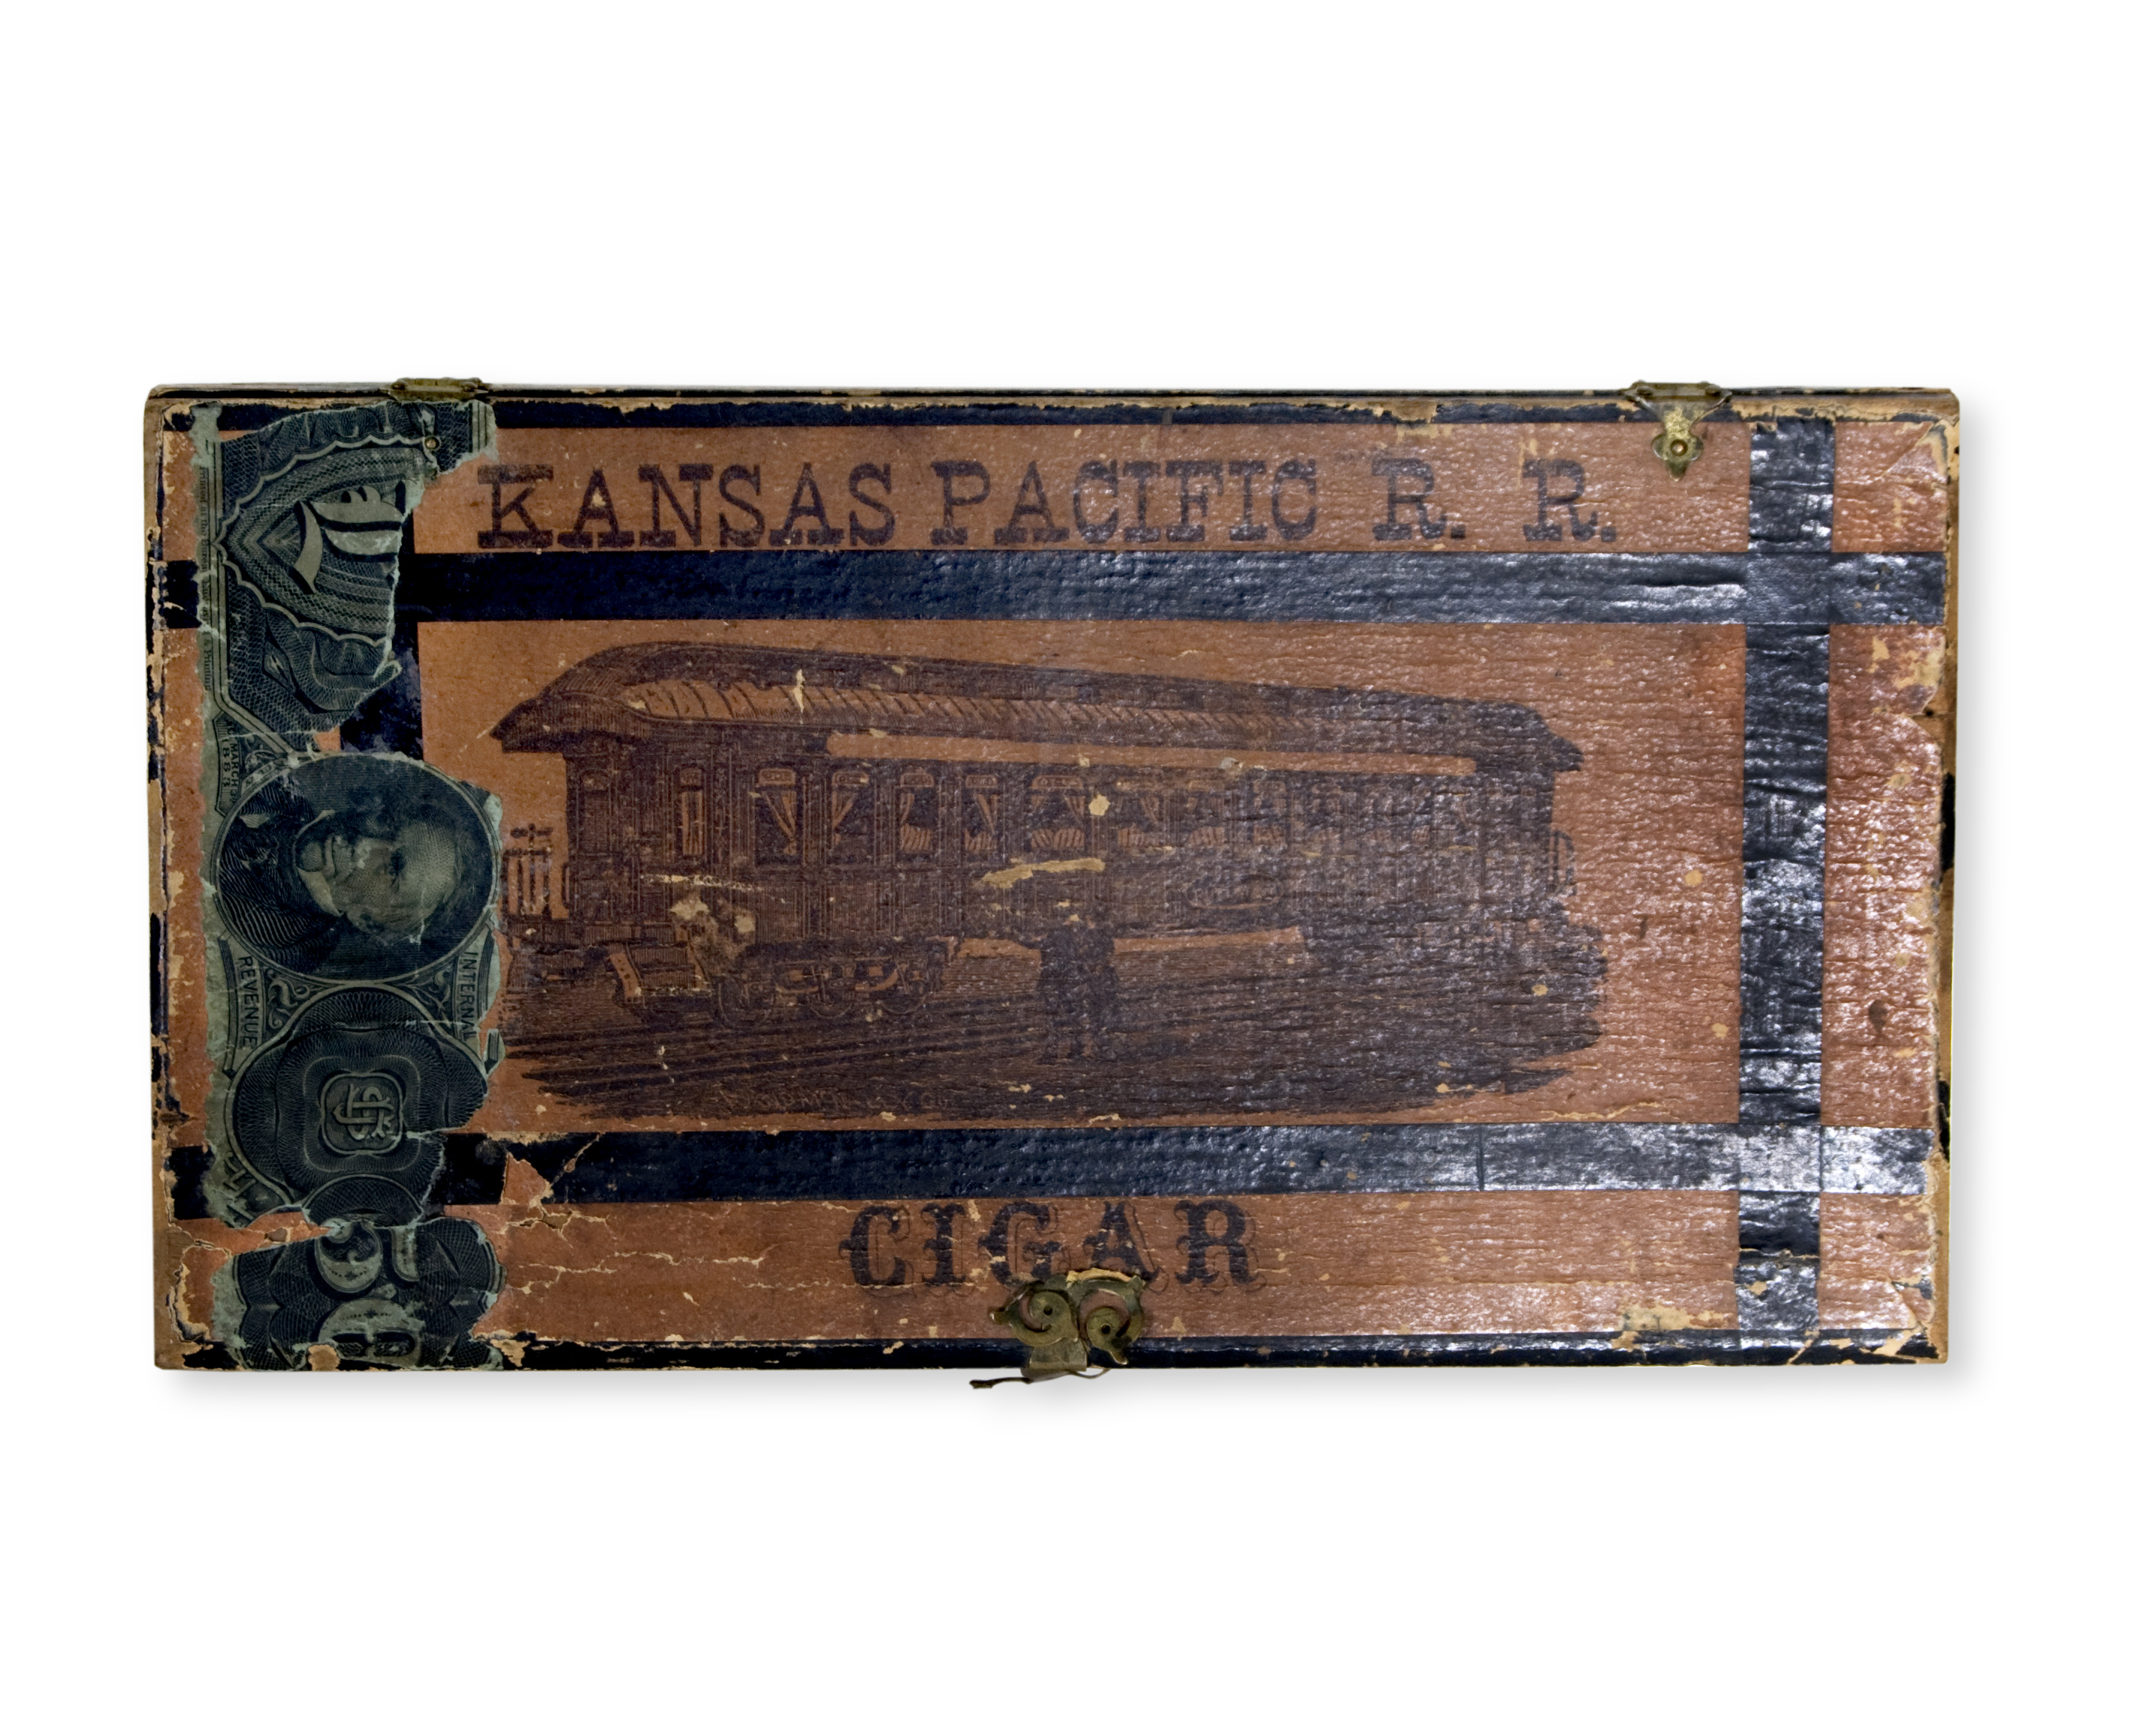 Kansas Pacific Railroad cigar box